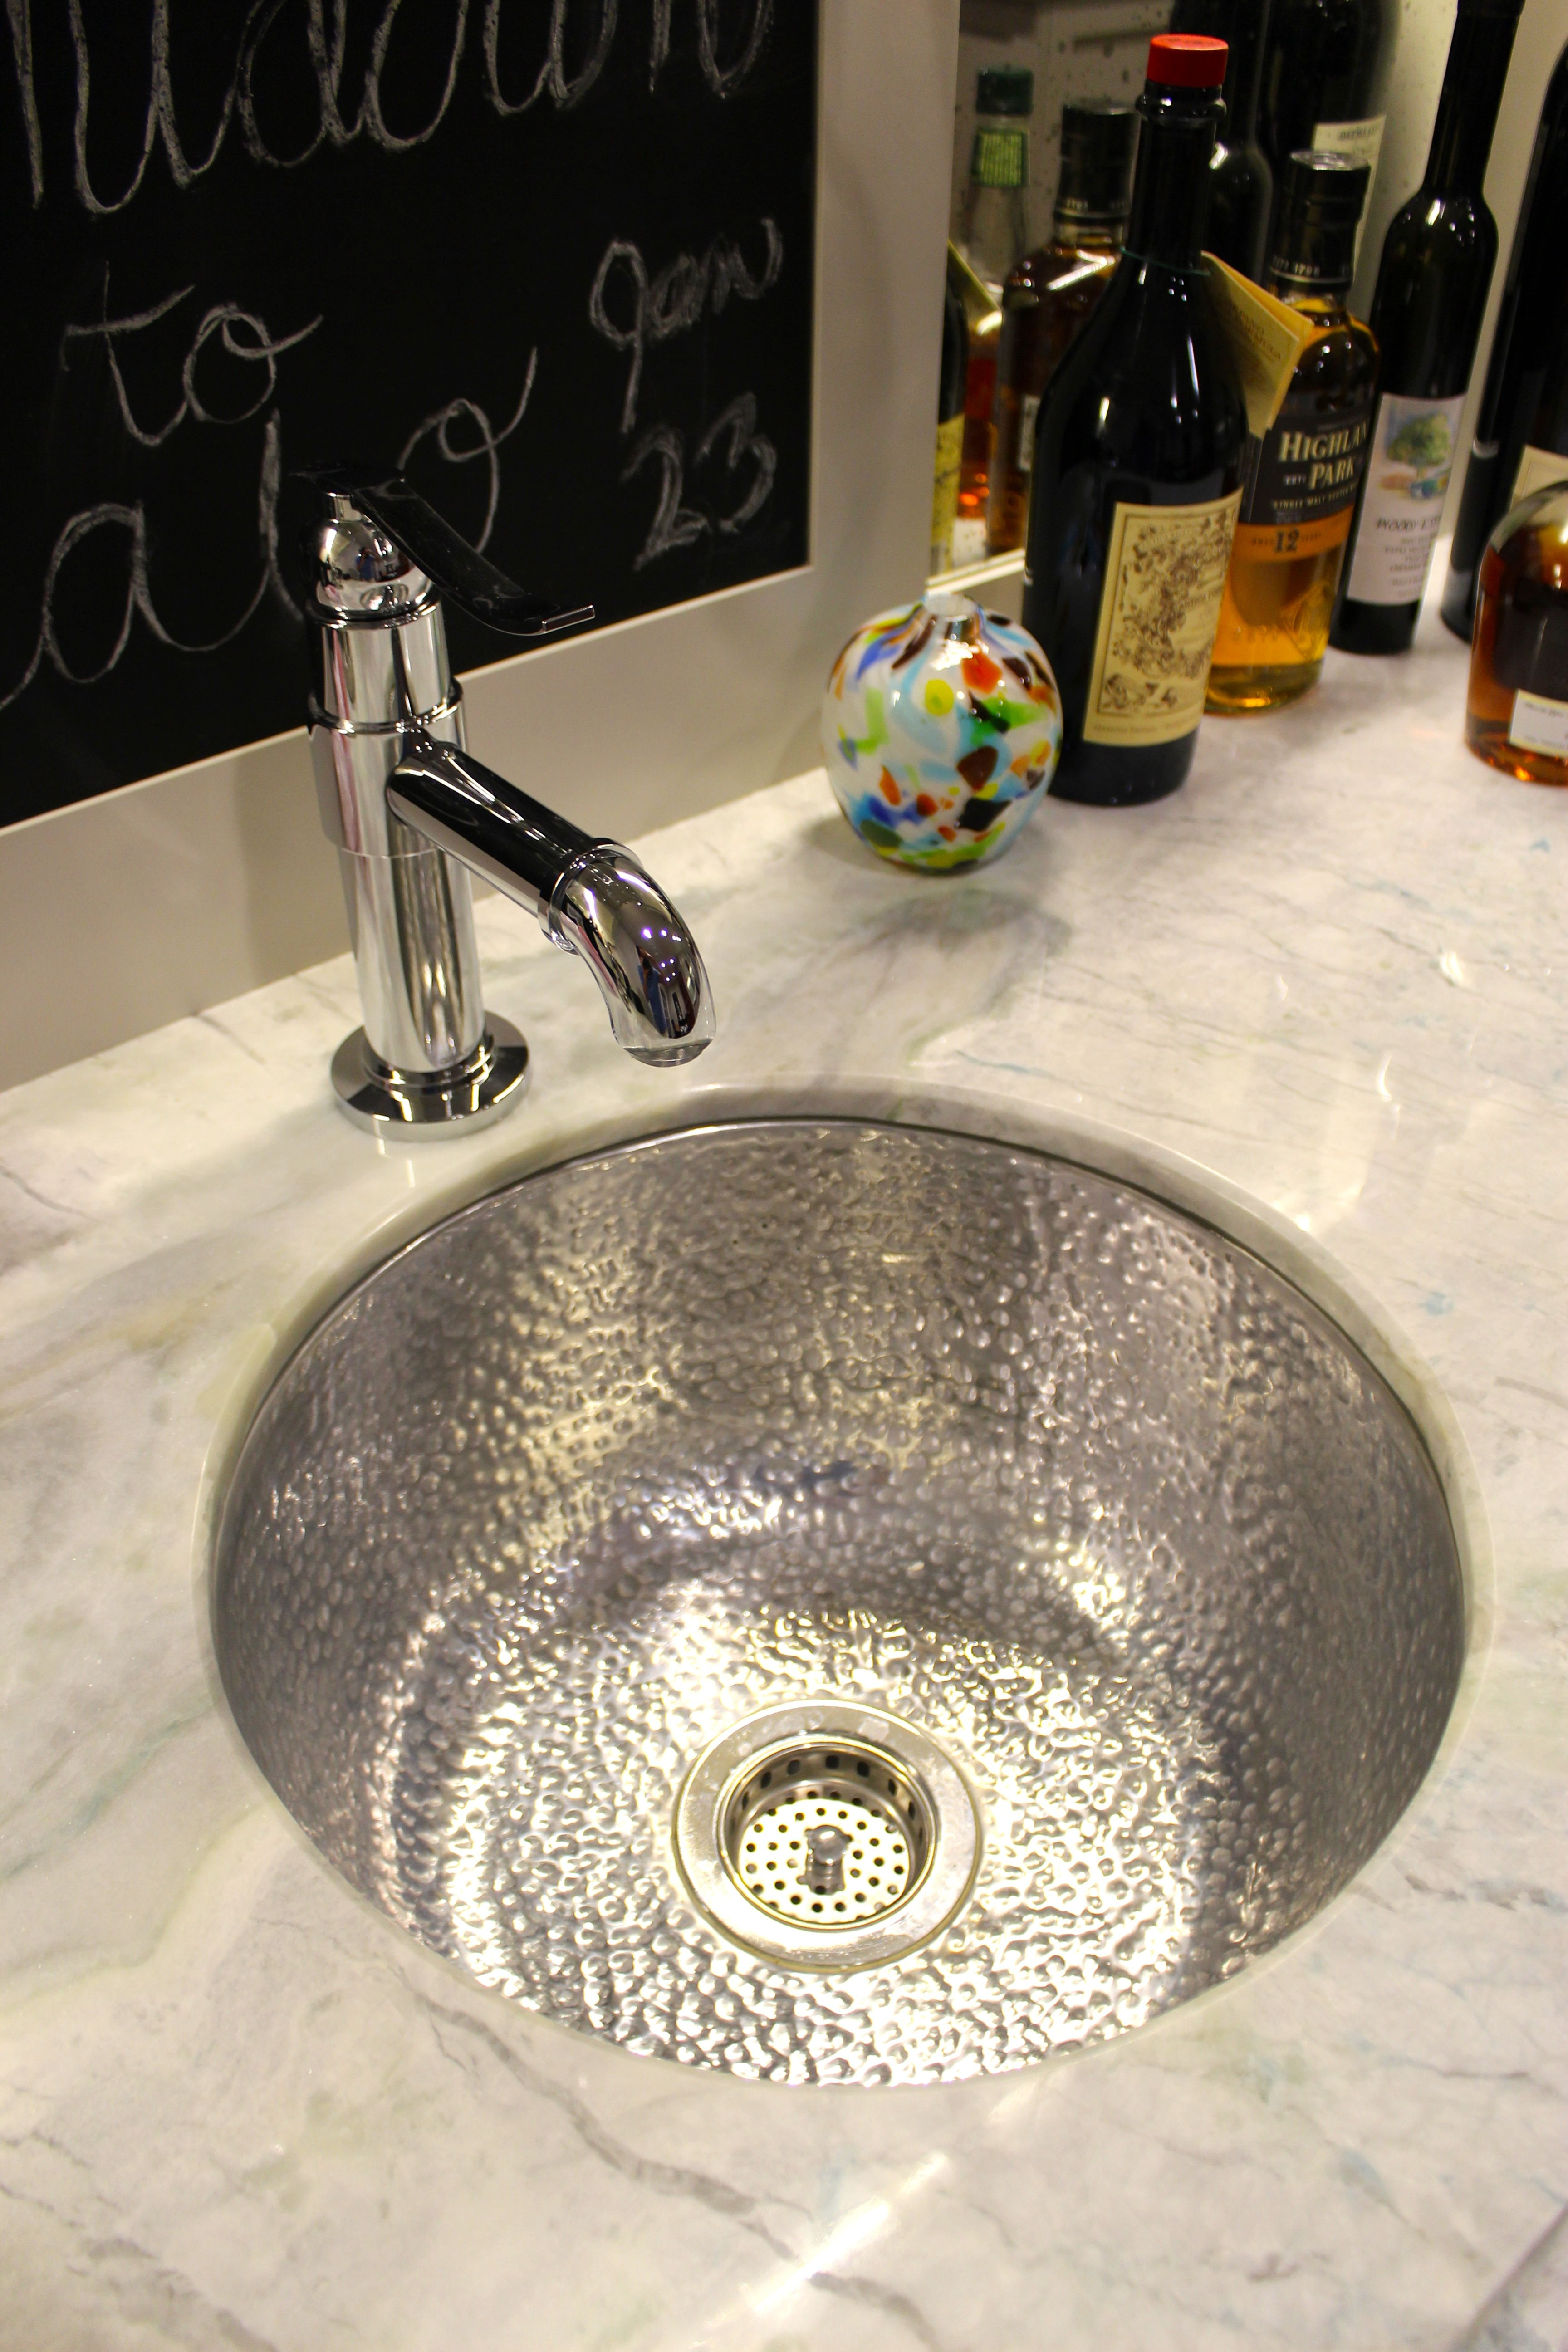 Bates Bates Polished Alloy Undermount Drop In Bar Sink Graff Polished Chrome Single Hole Lavatory Faucet Princess Bar Sink Undermount Bar Sink Copper Sink